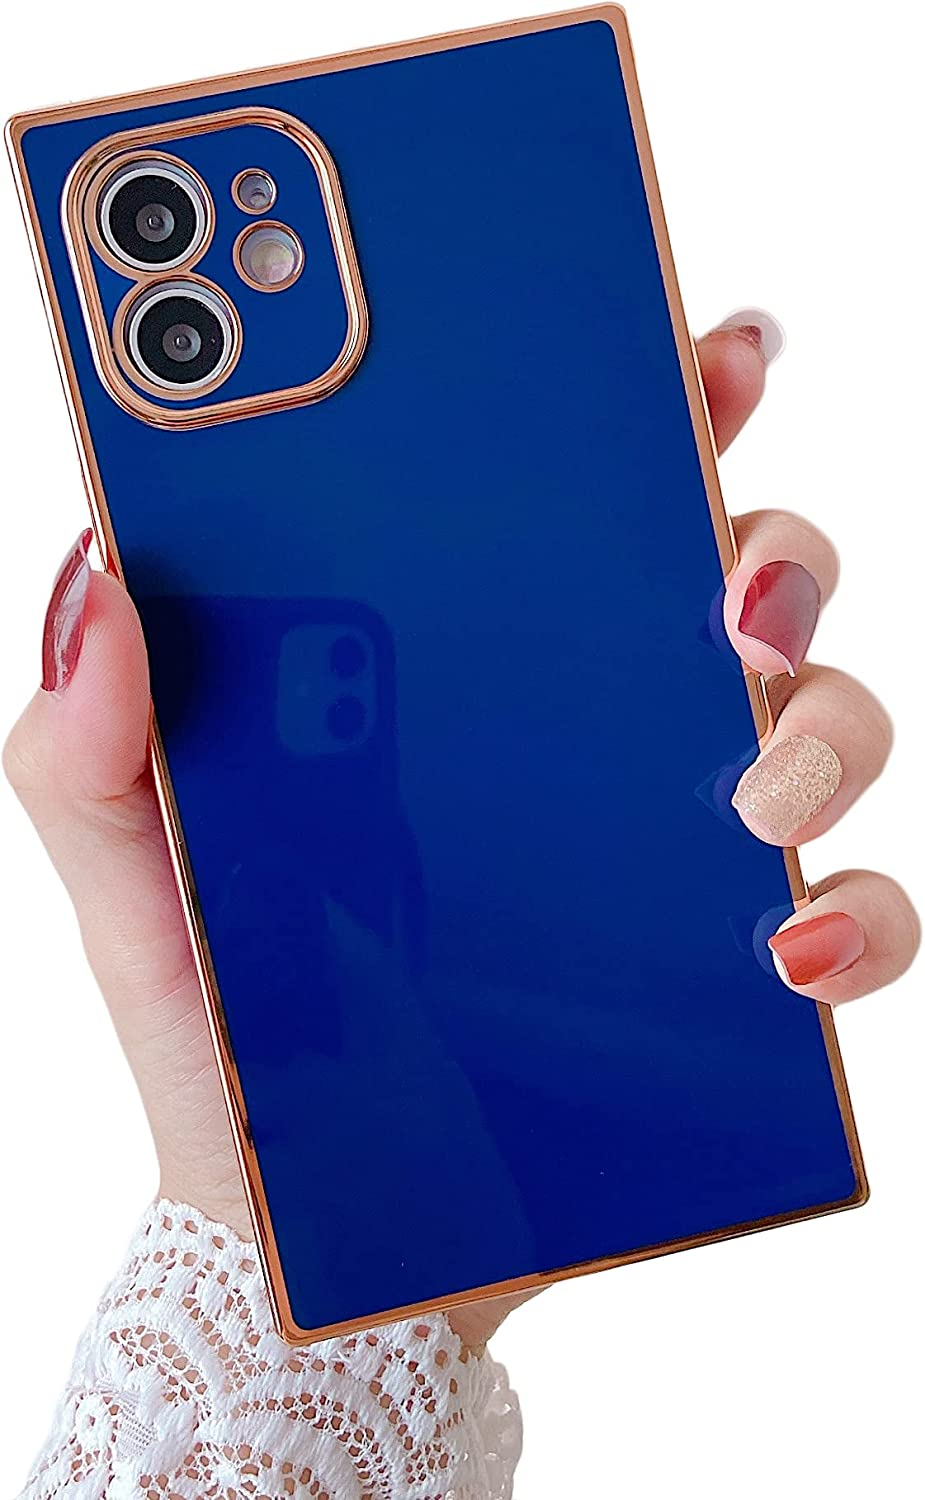 Cocomii Square Plated Plain Color iPhone 12 Mini Case, Slim Thin Glossy Soft TPU Silicone Rubber Rose Gold Plated Trunk Box Square Edges Bumper Cover Compatible with Apple iPhone 12 Mini 5.4